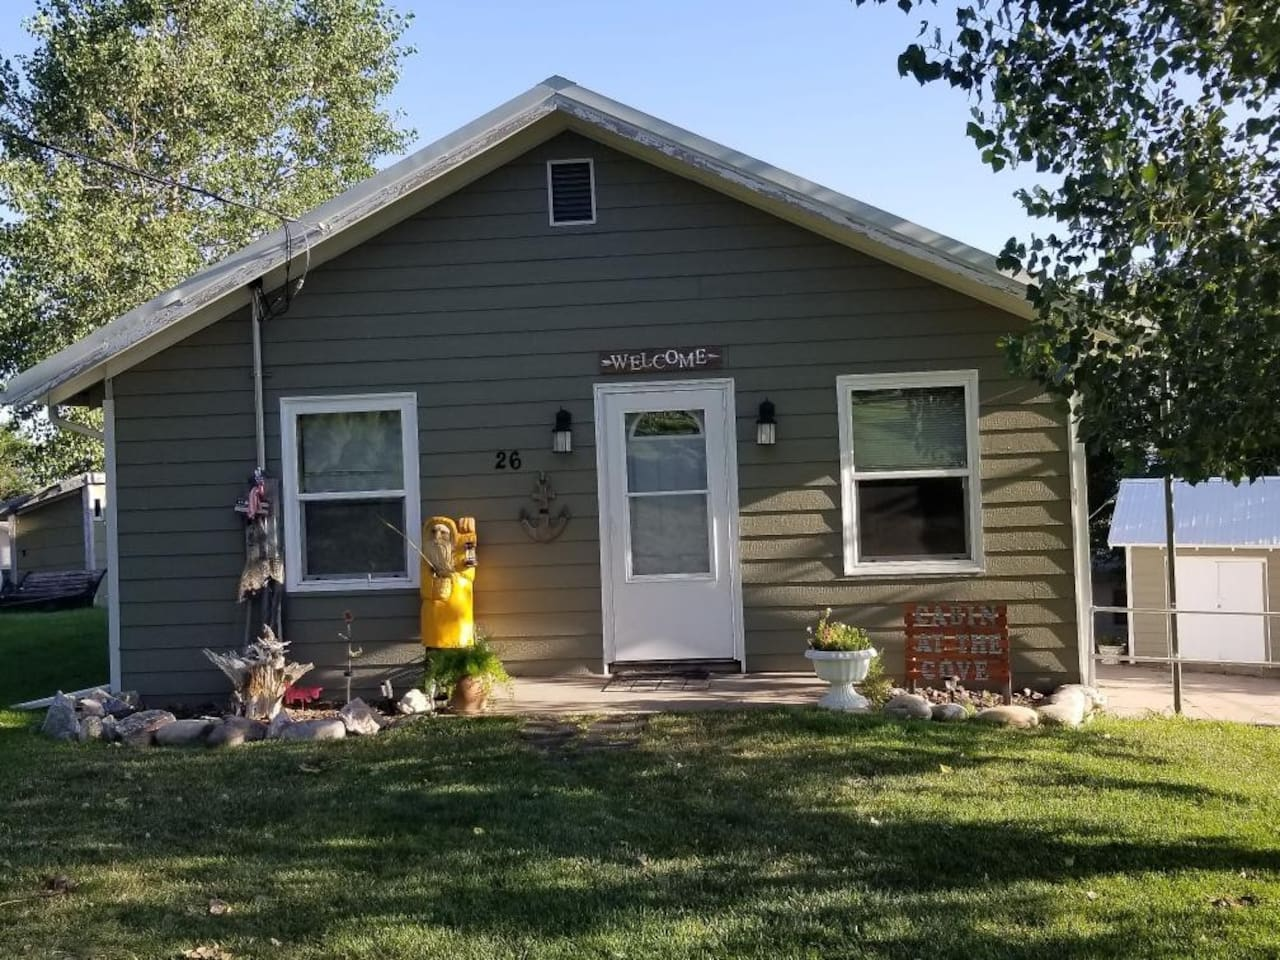 Welcome to Cabin on the Cove at Lake McConaughy, Nebraska.  Cabin sleeps 8 with 2 bedrooms and two sofa sleepers. Walking distance to Lake Mac.